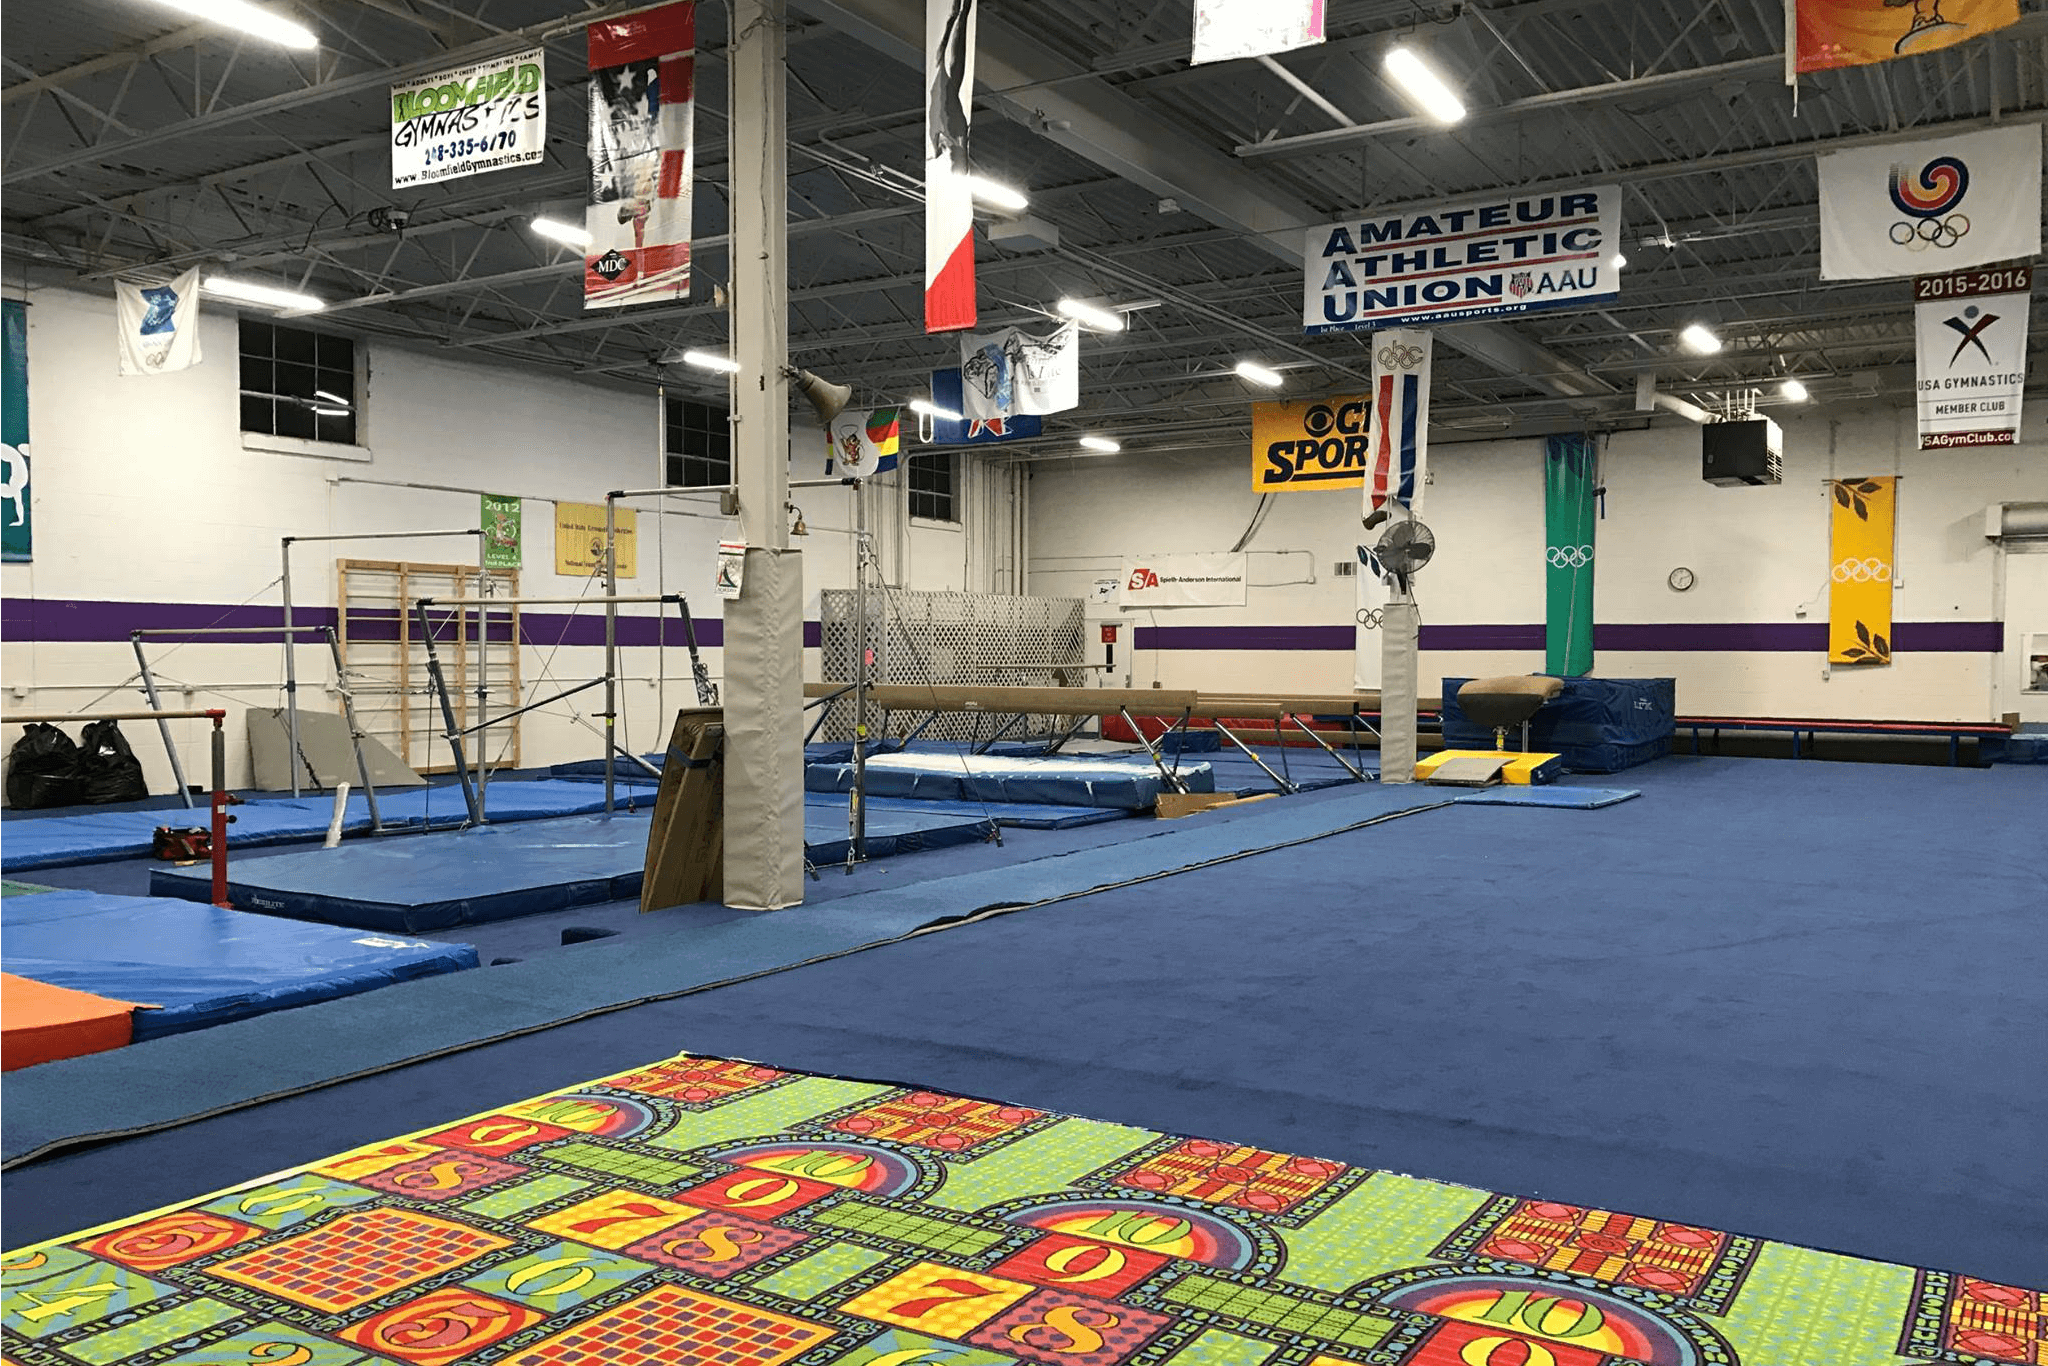 https://www.facebook.com/BloomfieldGymnastics/photos/a.10151216581312090.514769.75340072089/10154919653987090/?type=3&theater